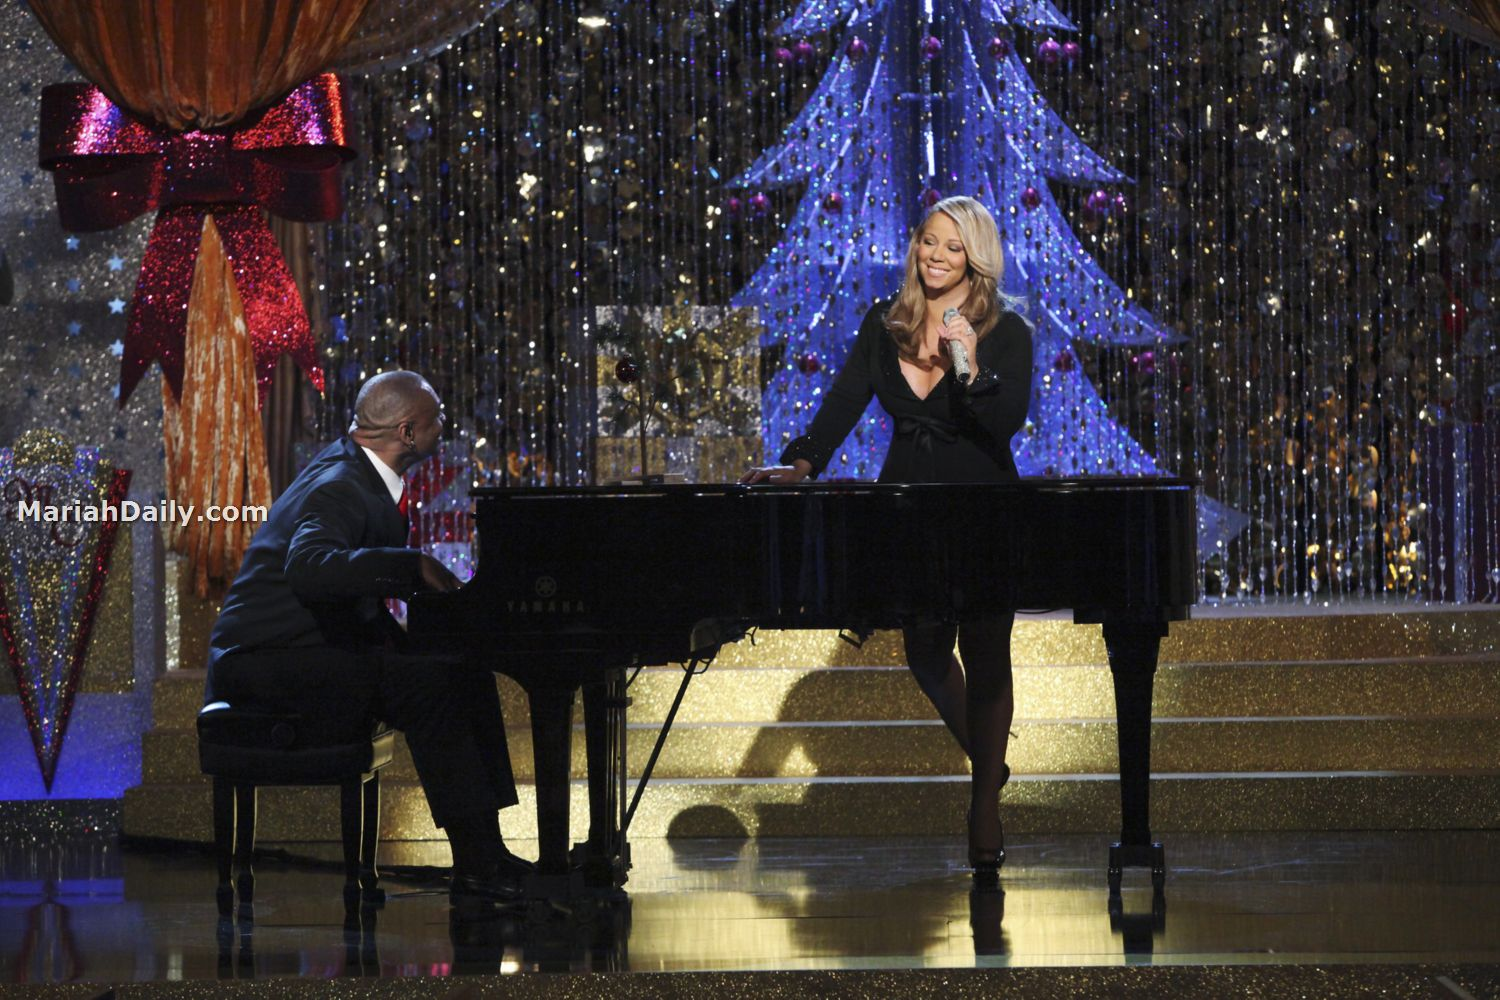 mariah6 Hot Shots: Mariah Carey Dazzles In Christmas Special